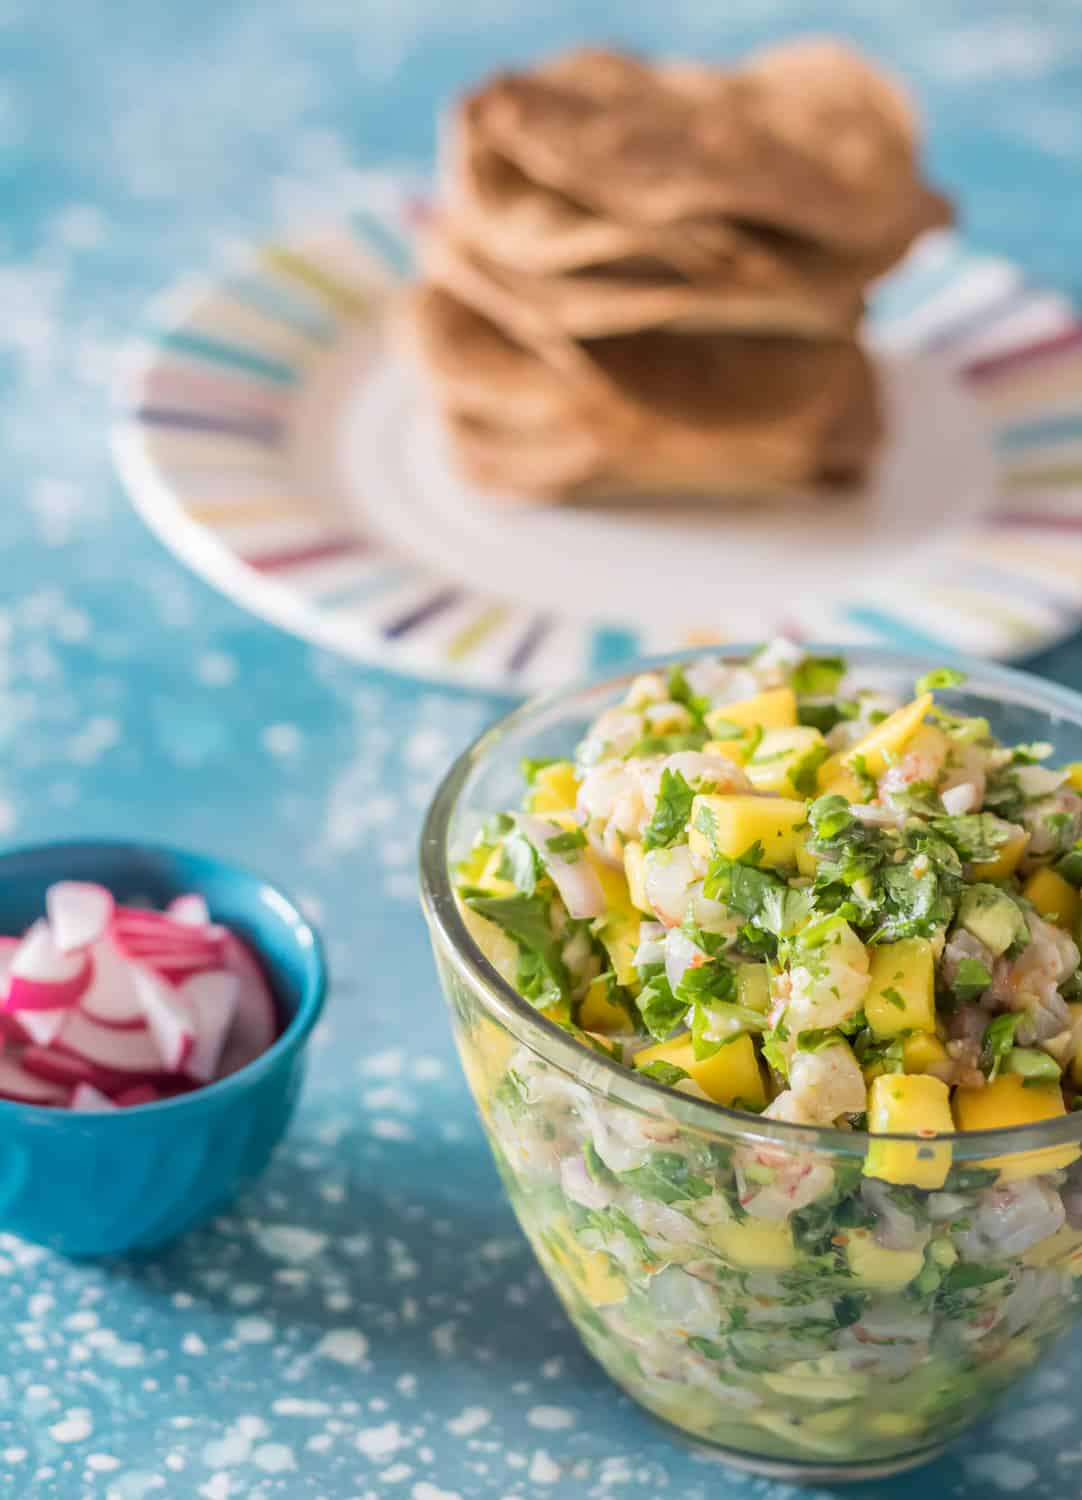 A bowl of shrimp ceviche, sliced radishes, and baked tortillas on a striped plate.